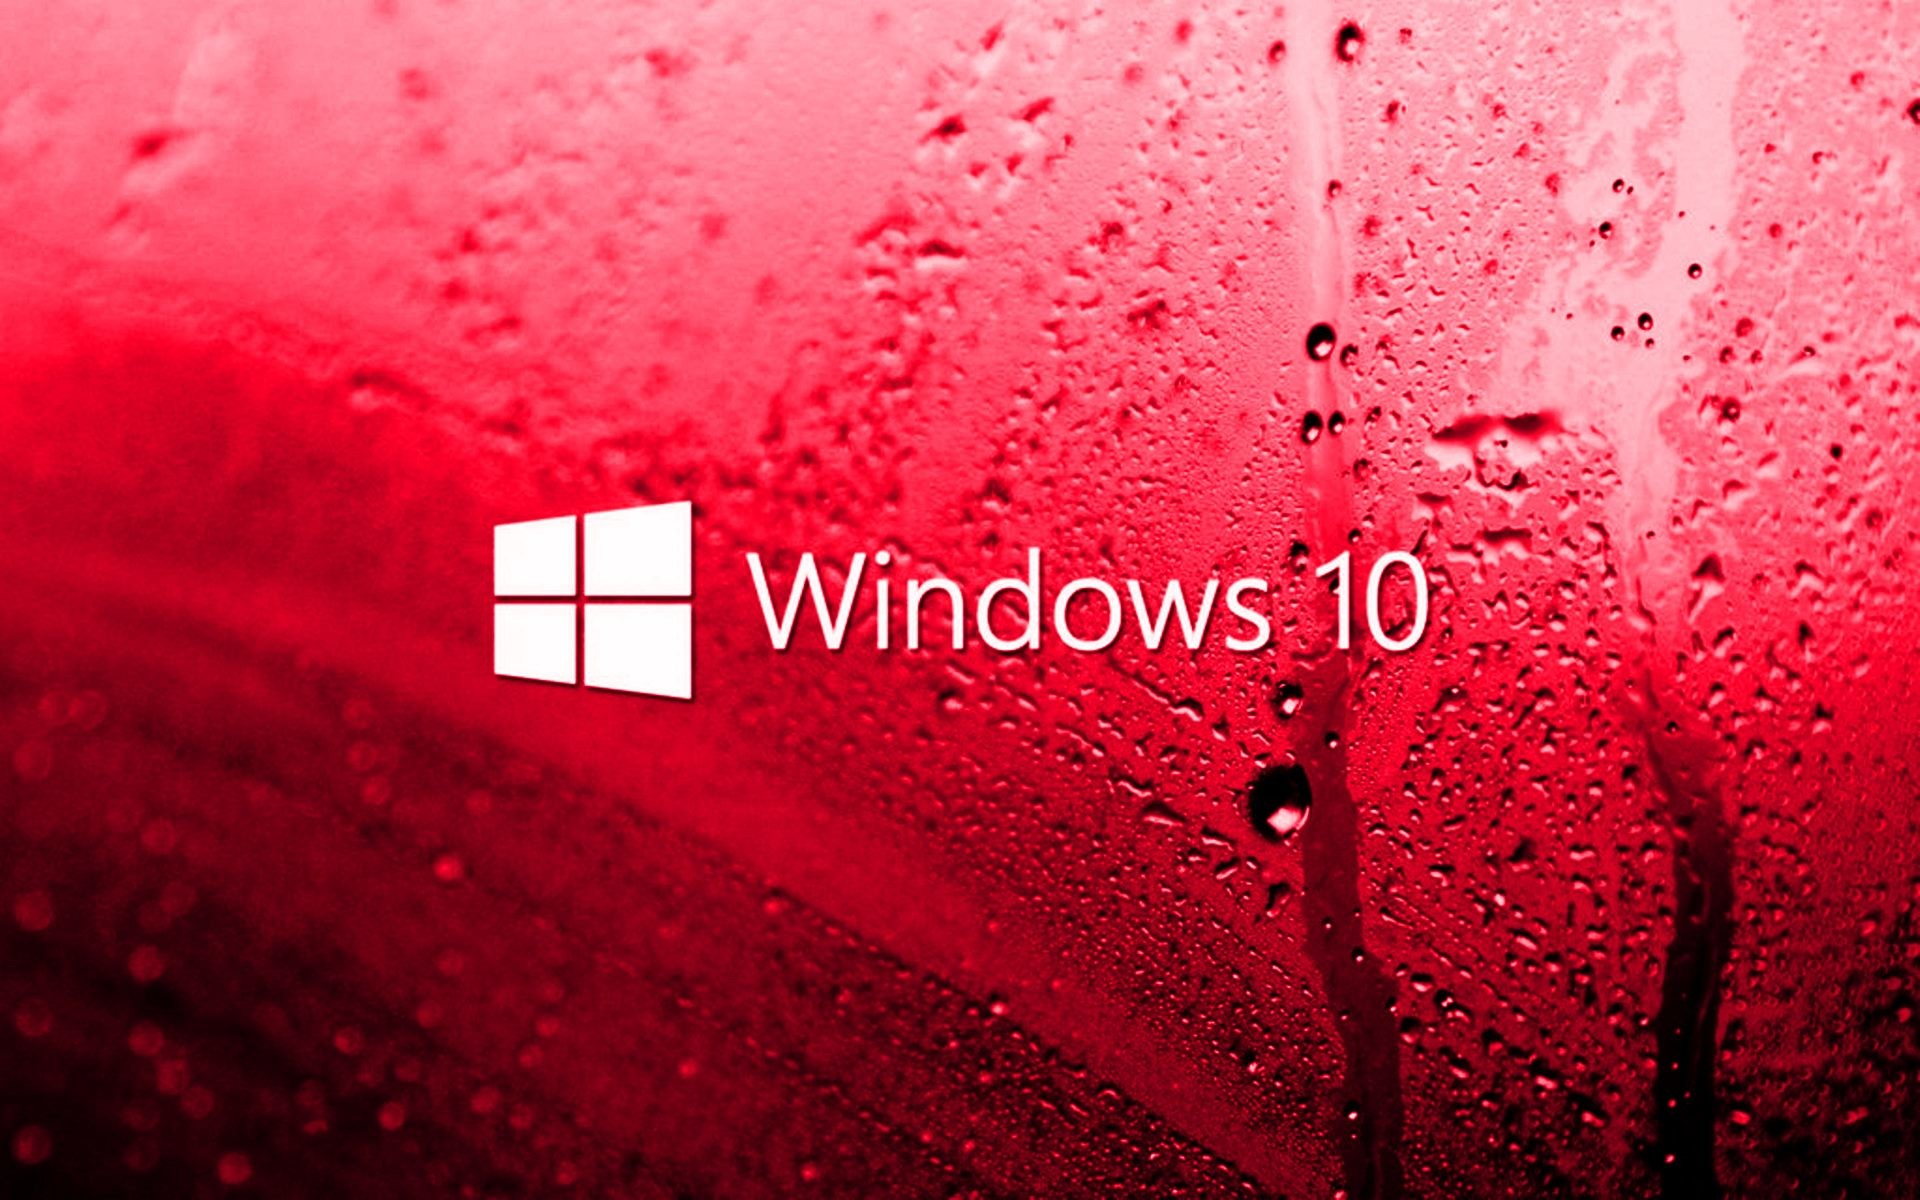 1920x1200 Windows-10-Wallpapers-Free-Download-Galerie-(79-